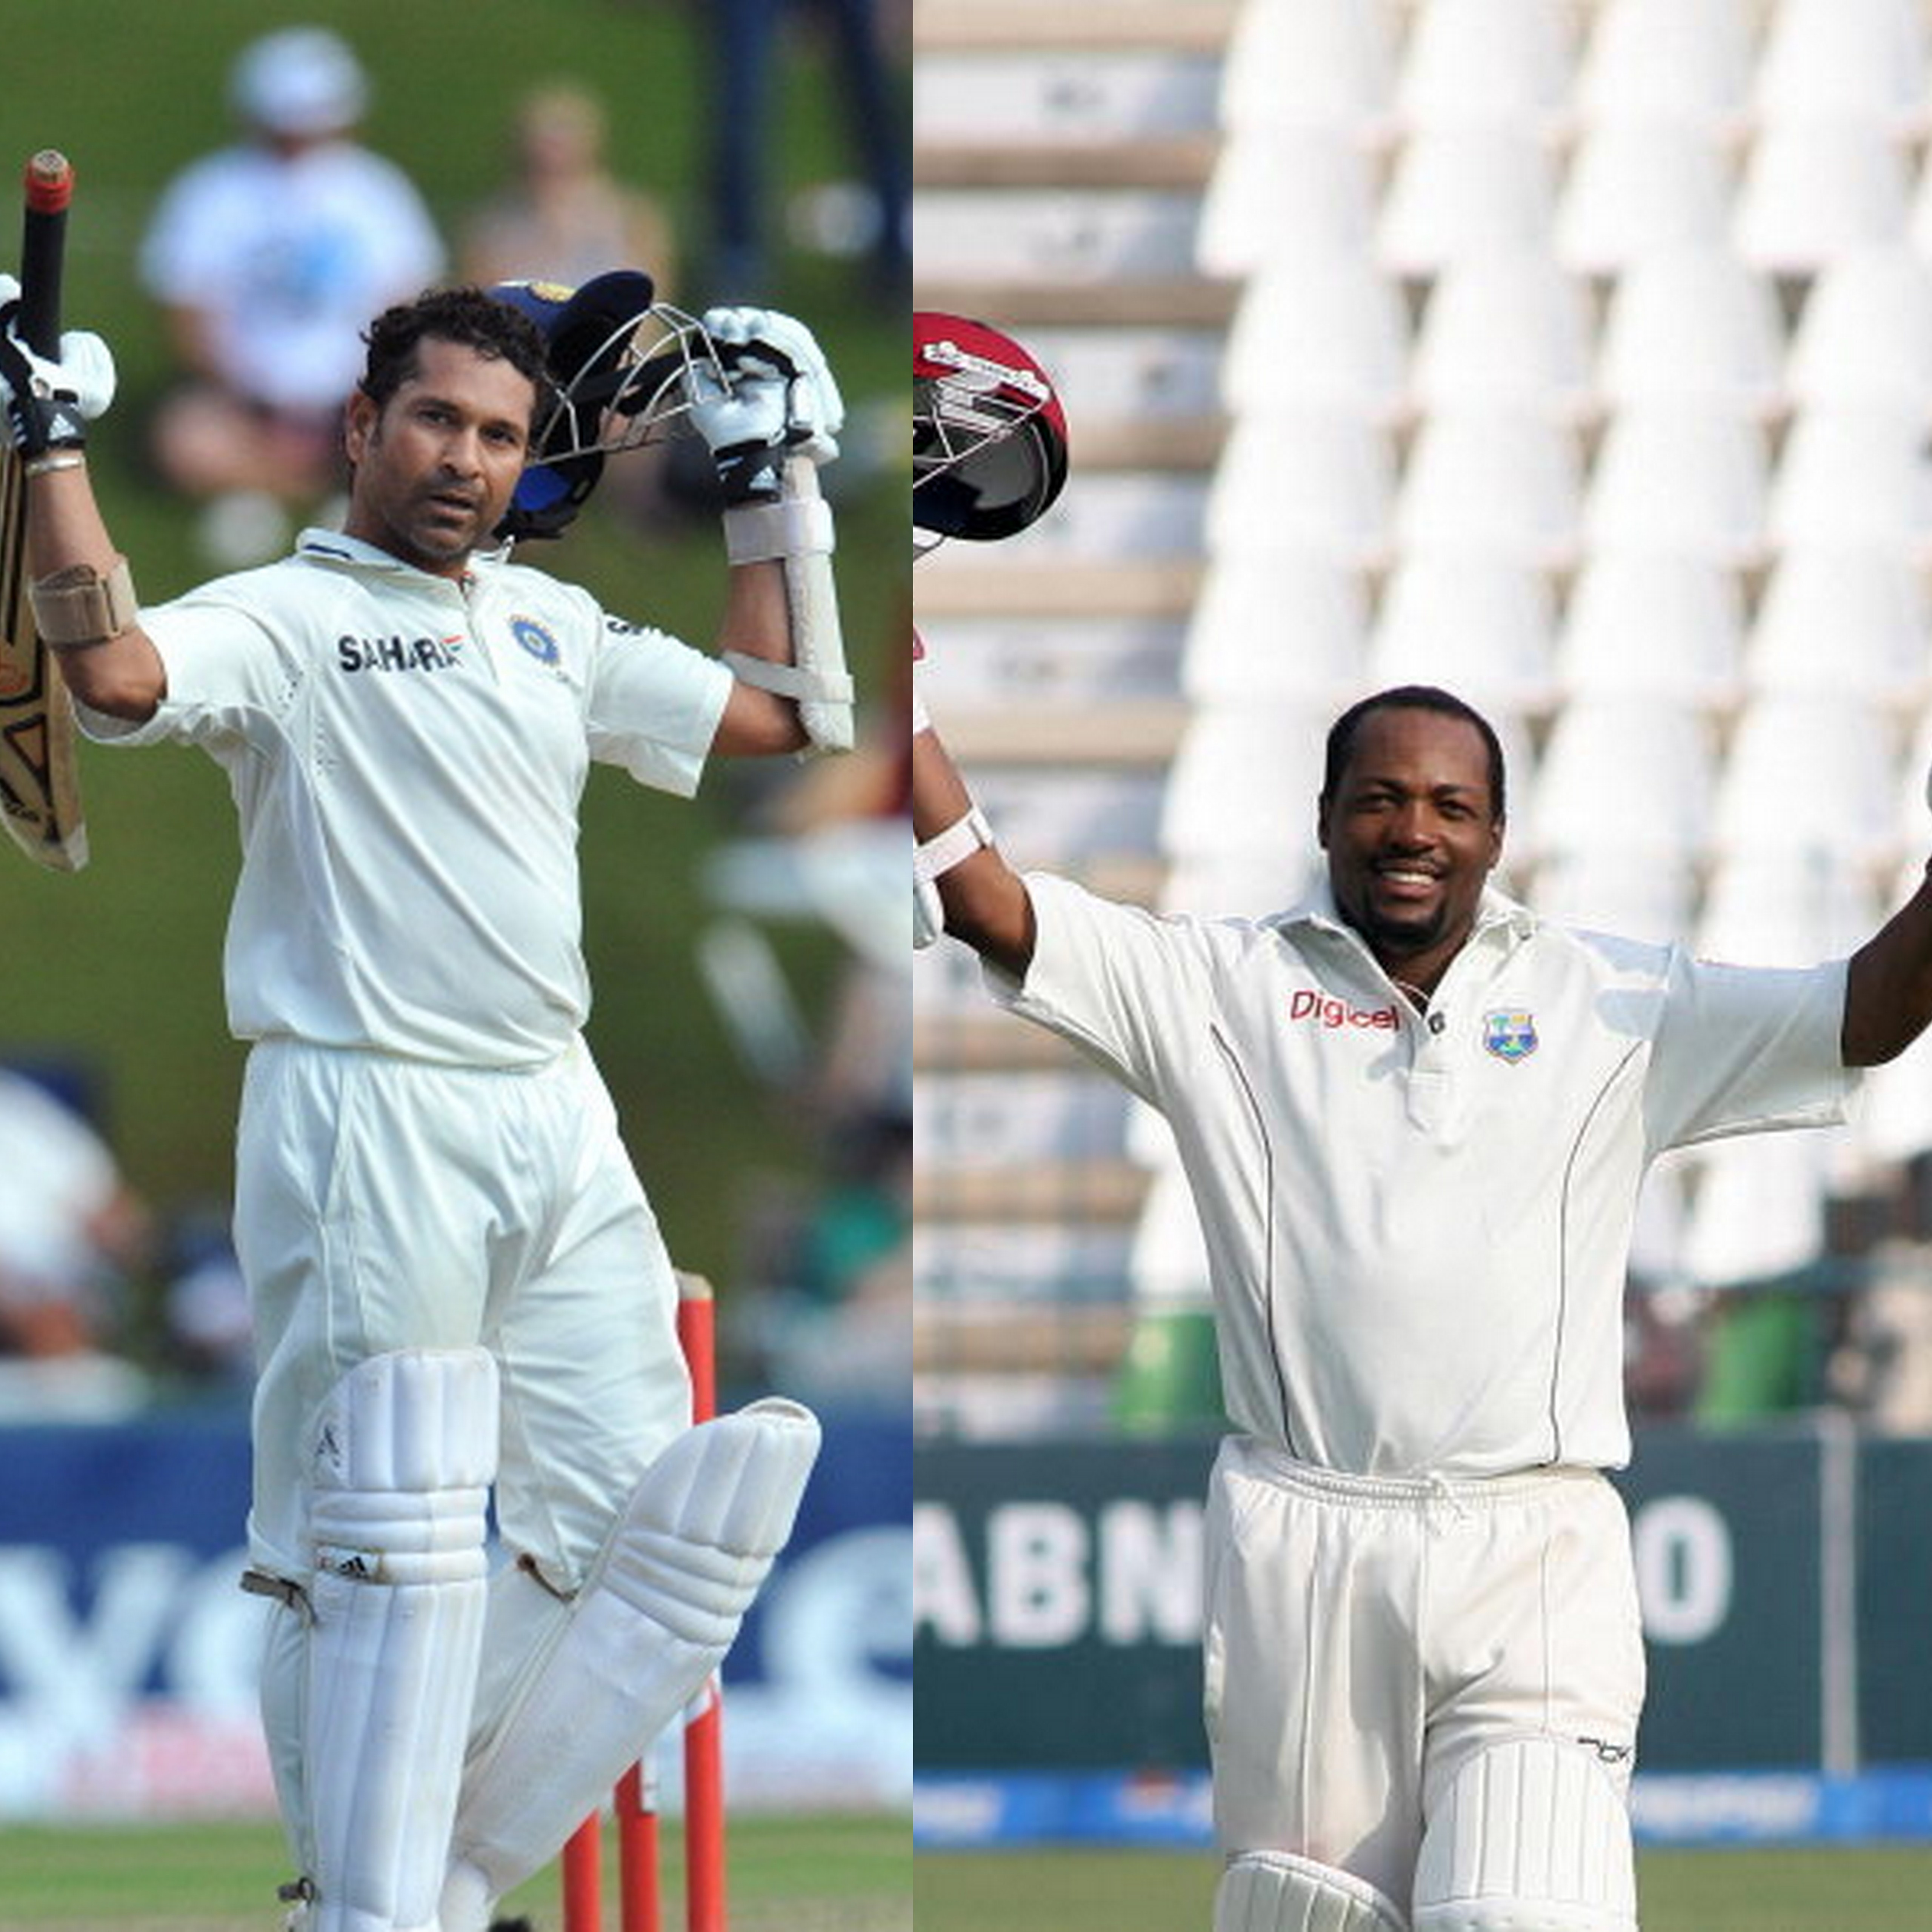 brian lara vs sachin tendulkar - what do the numbers say?